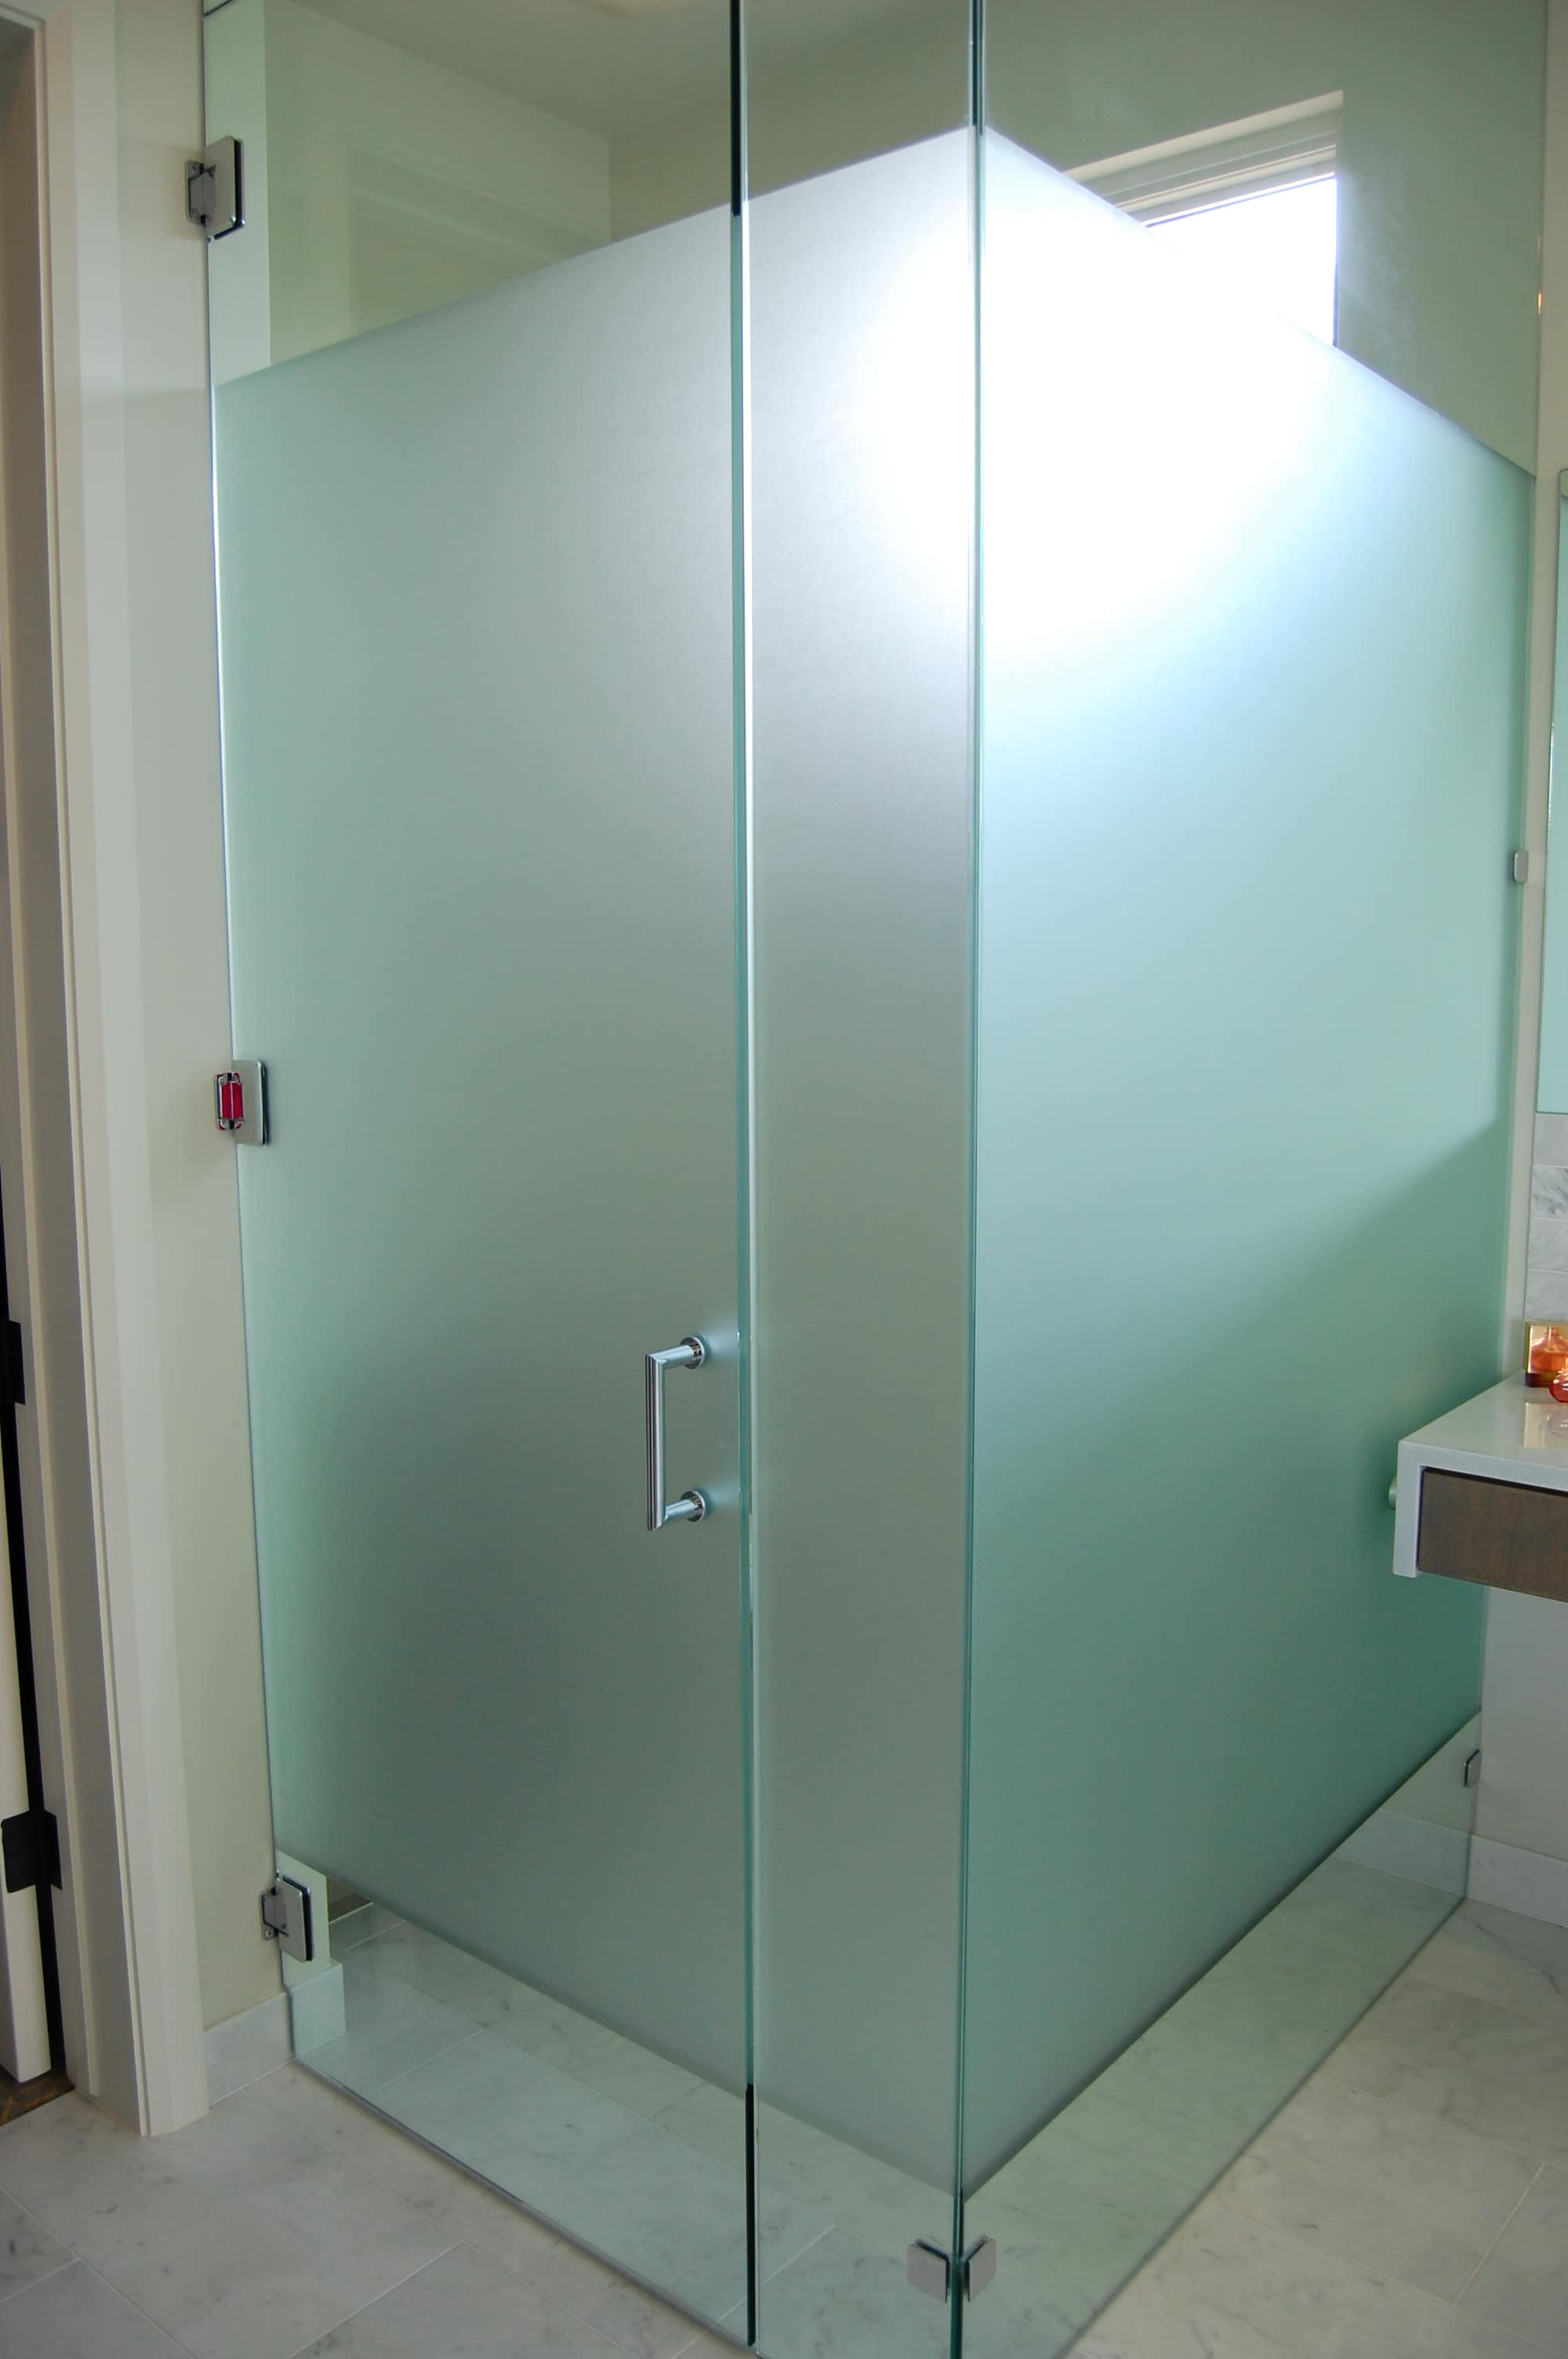 Shower glass harbor all glass mirror inc for Bathroom designs glass